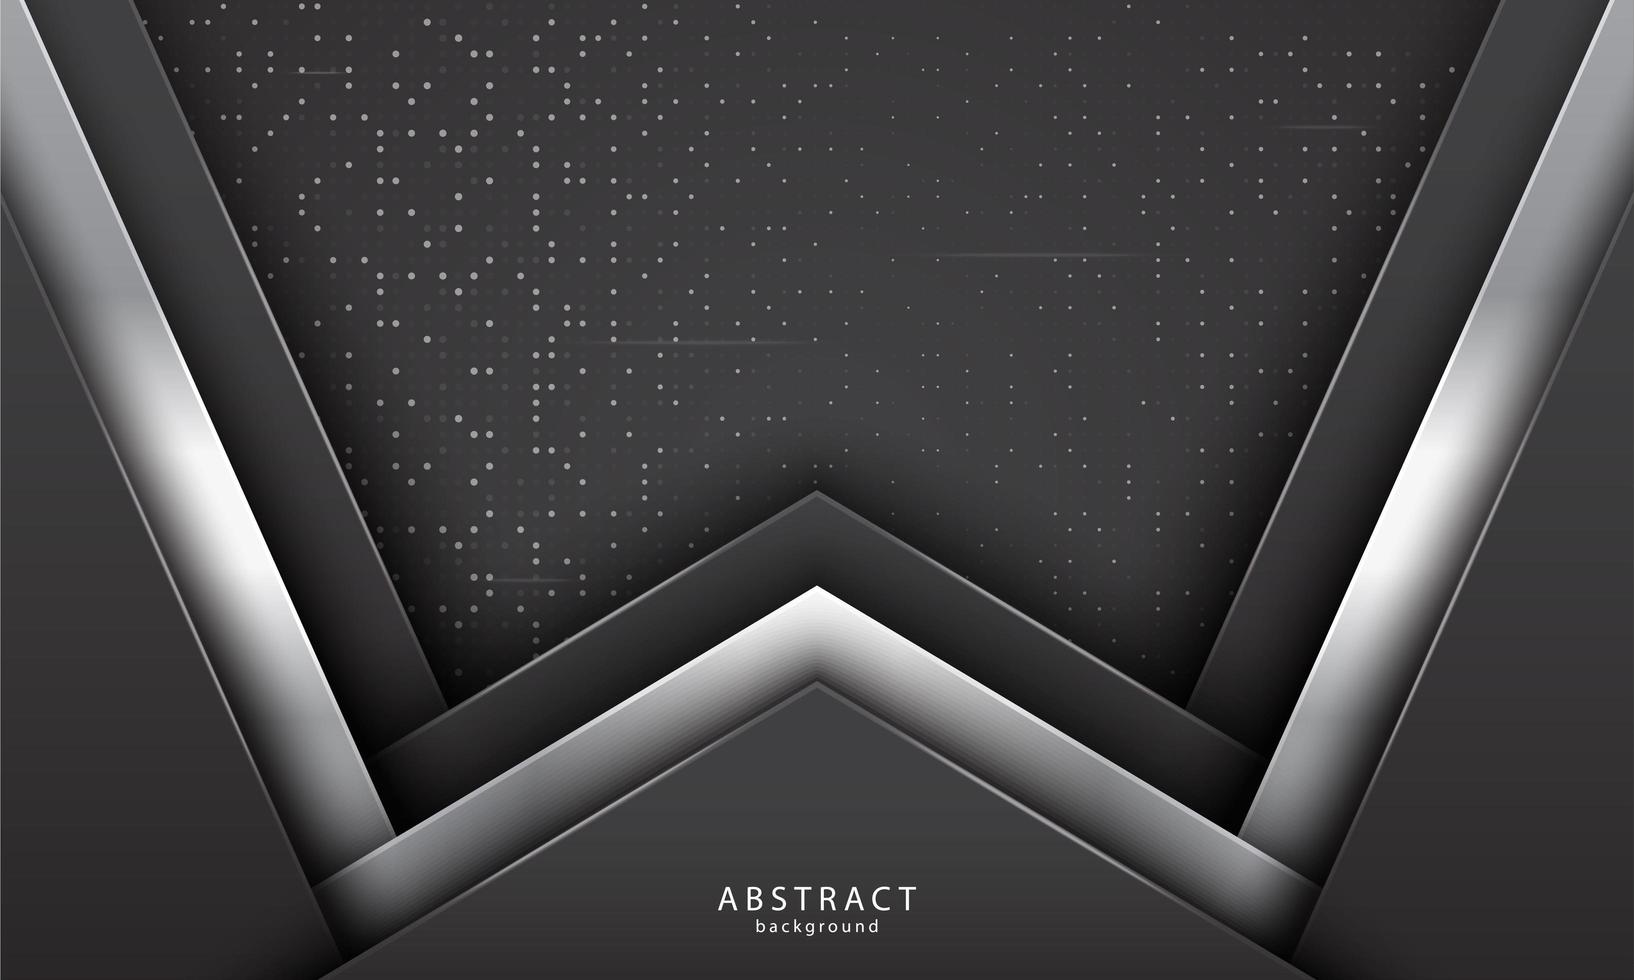 Realistic Overlapping Shapes with Black and Silver Color vector